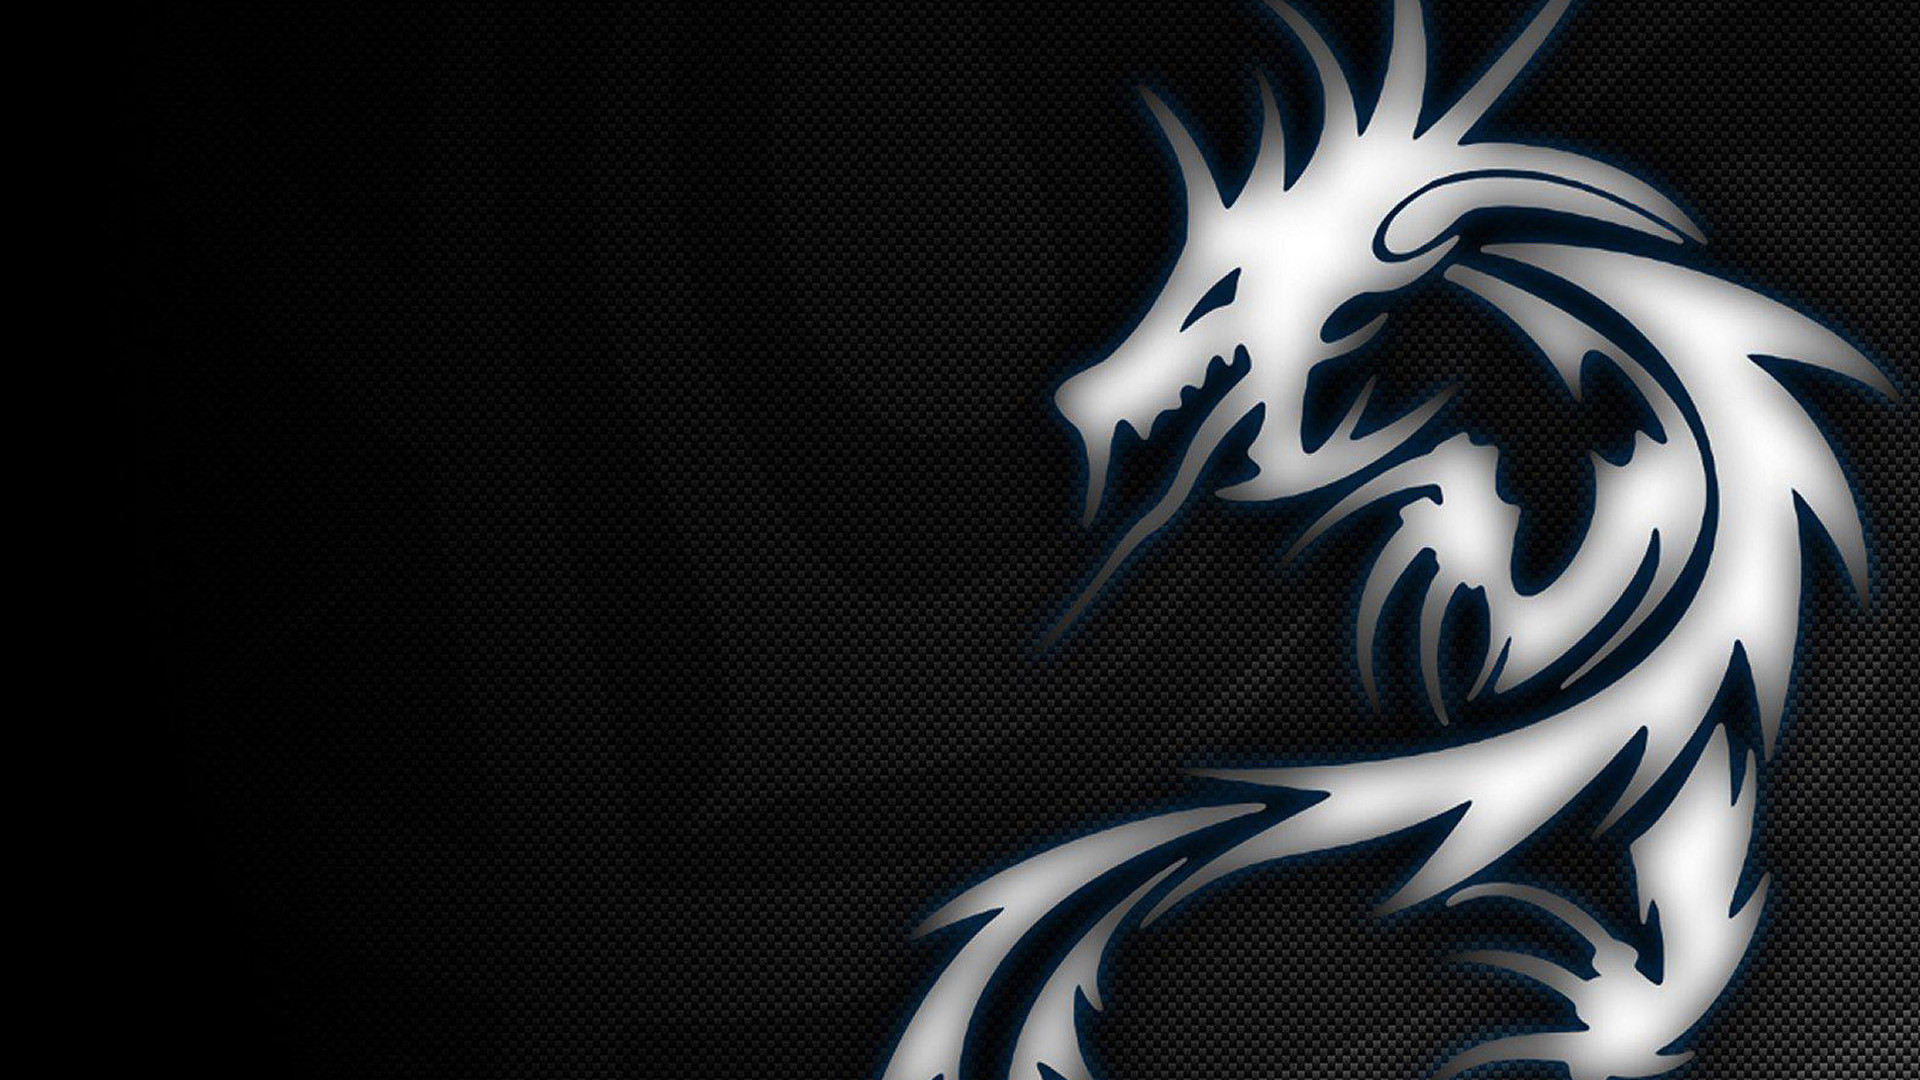 Msi dragon wallpaper 76 images 1920x1080 hd wallpapers msi dragon desktop background 1920 x 1080 1097 kb jpeg voltagebd Images